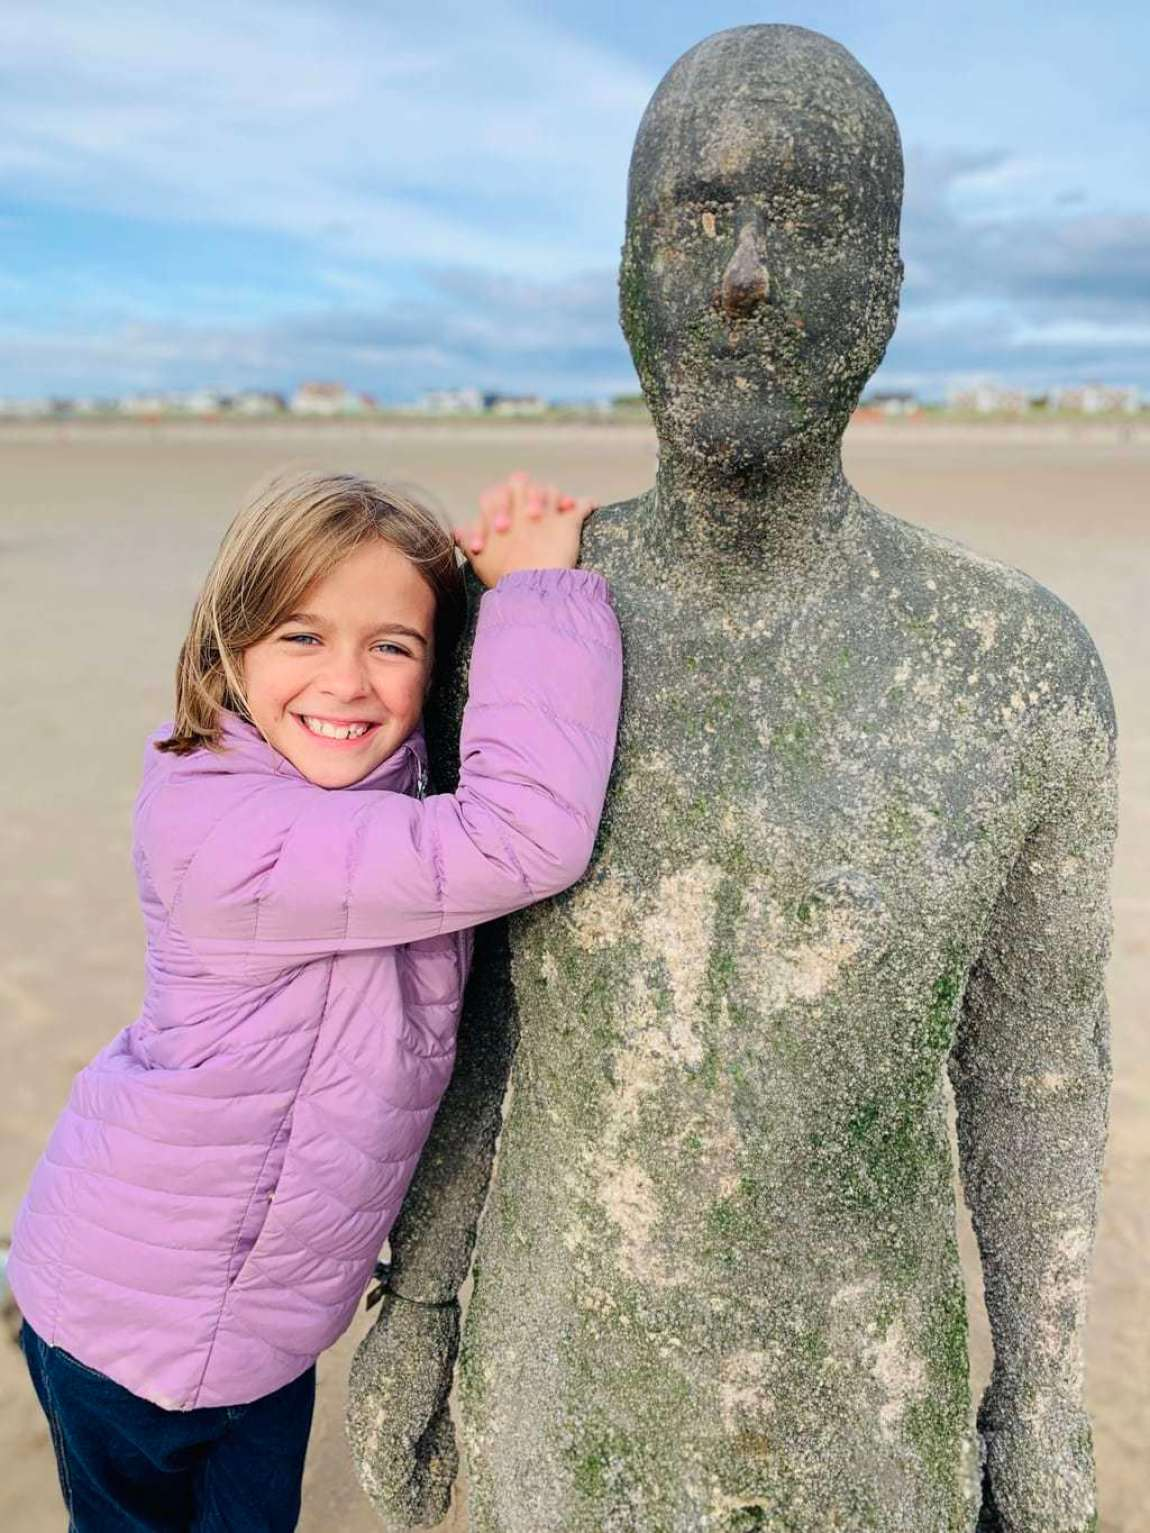 Visiting the Antony Gormley Statues in Liverpool   Another Place, Crosby